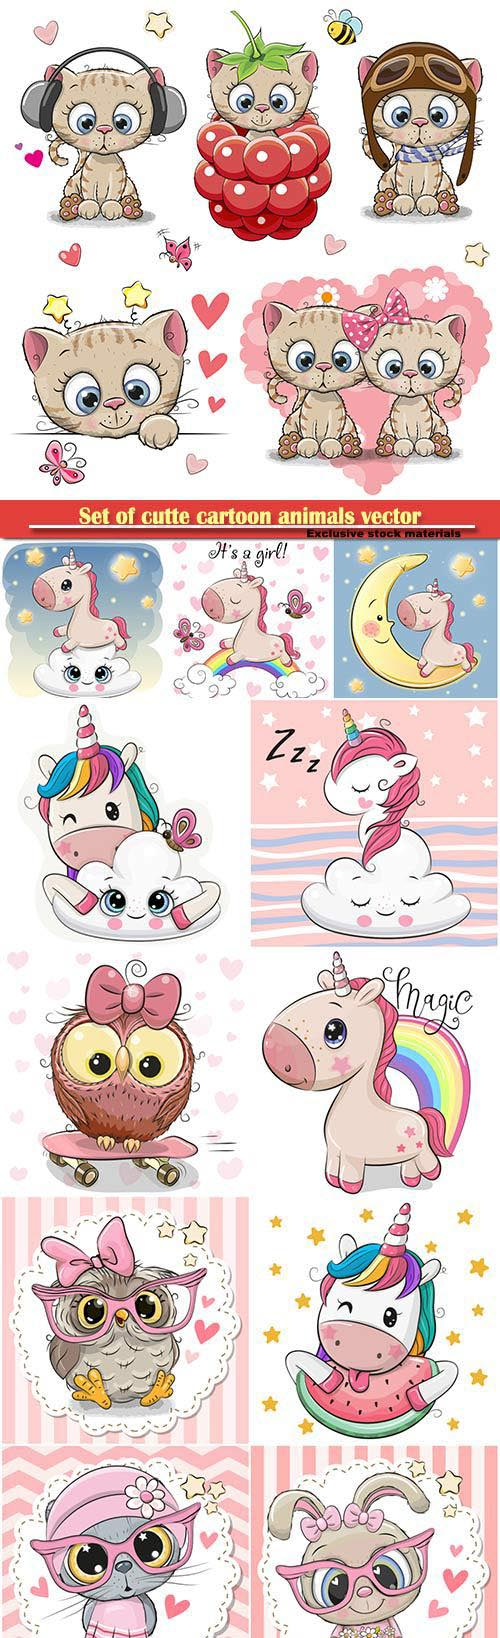 Set of cutte cartoon animals vector illustration